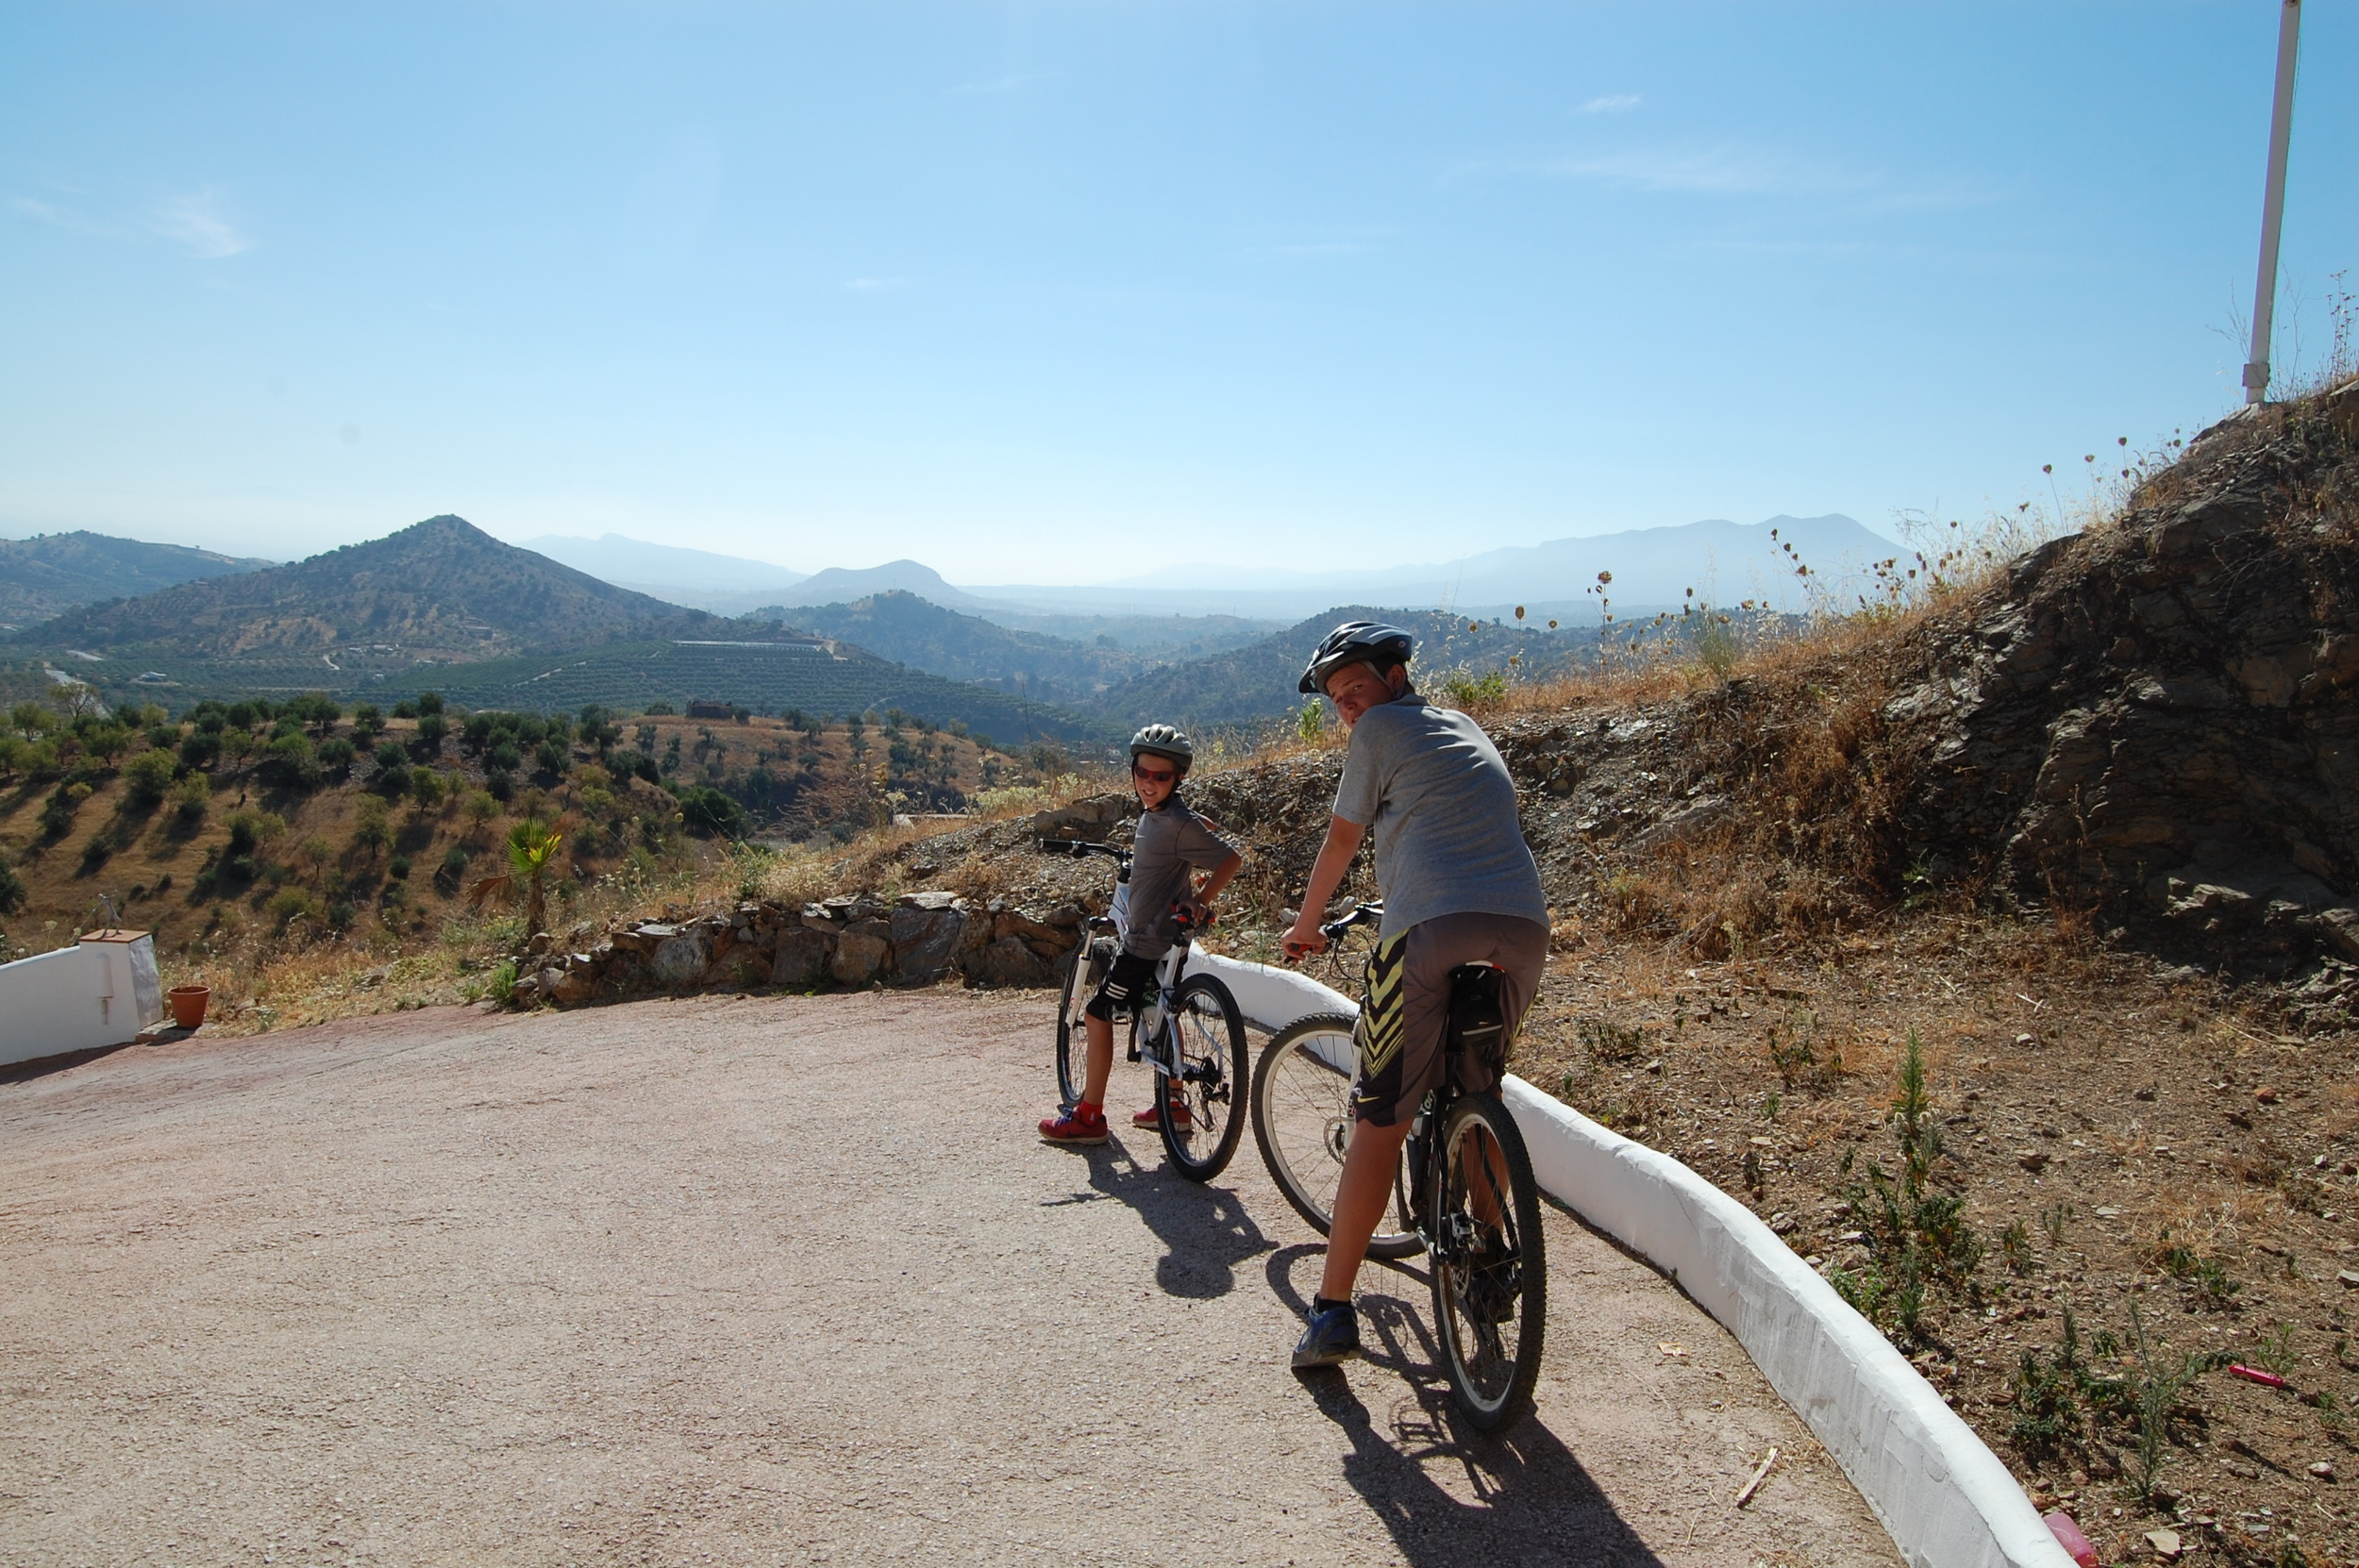 Rented bikes, for them hills.